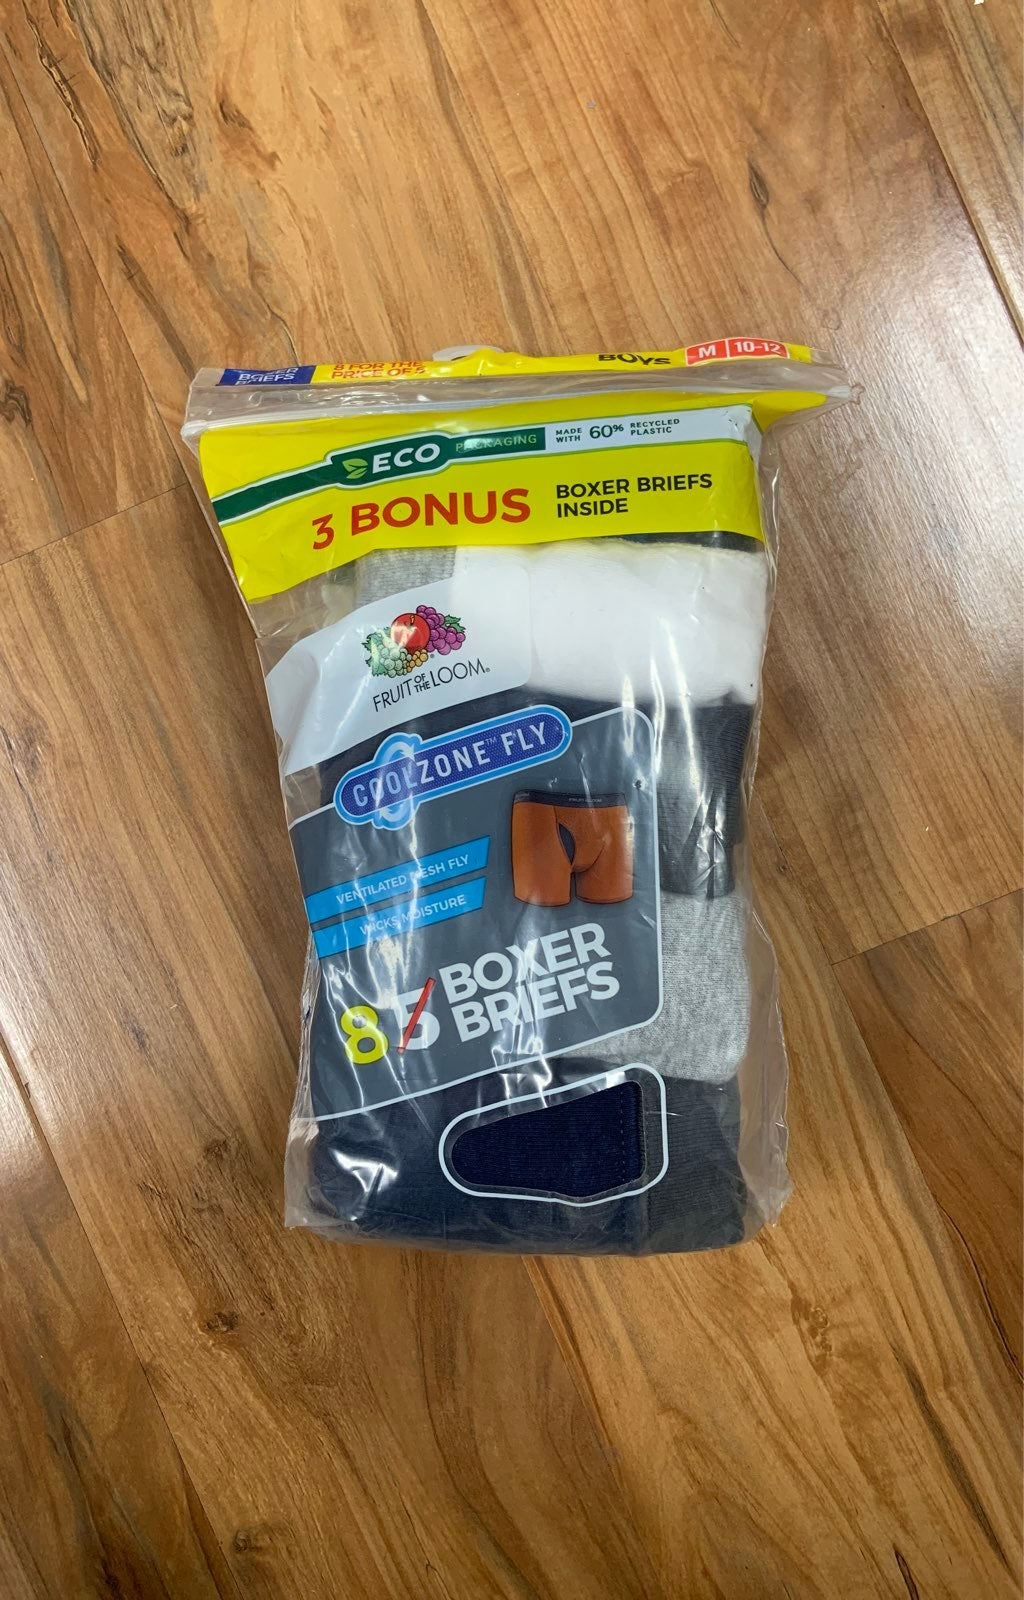 8 new Boxers boys size M 10-12